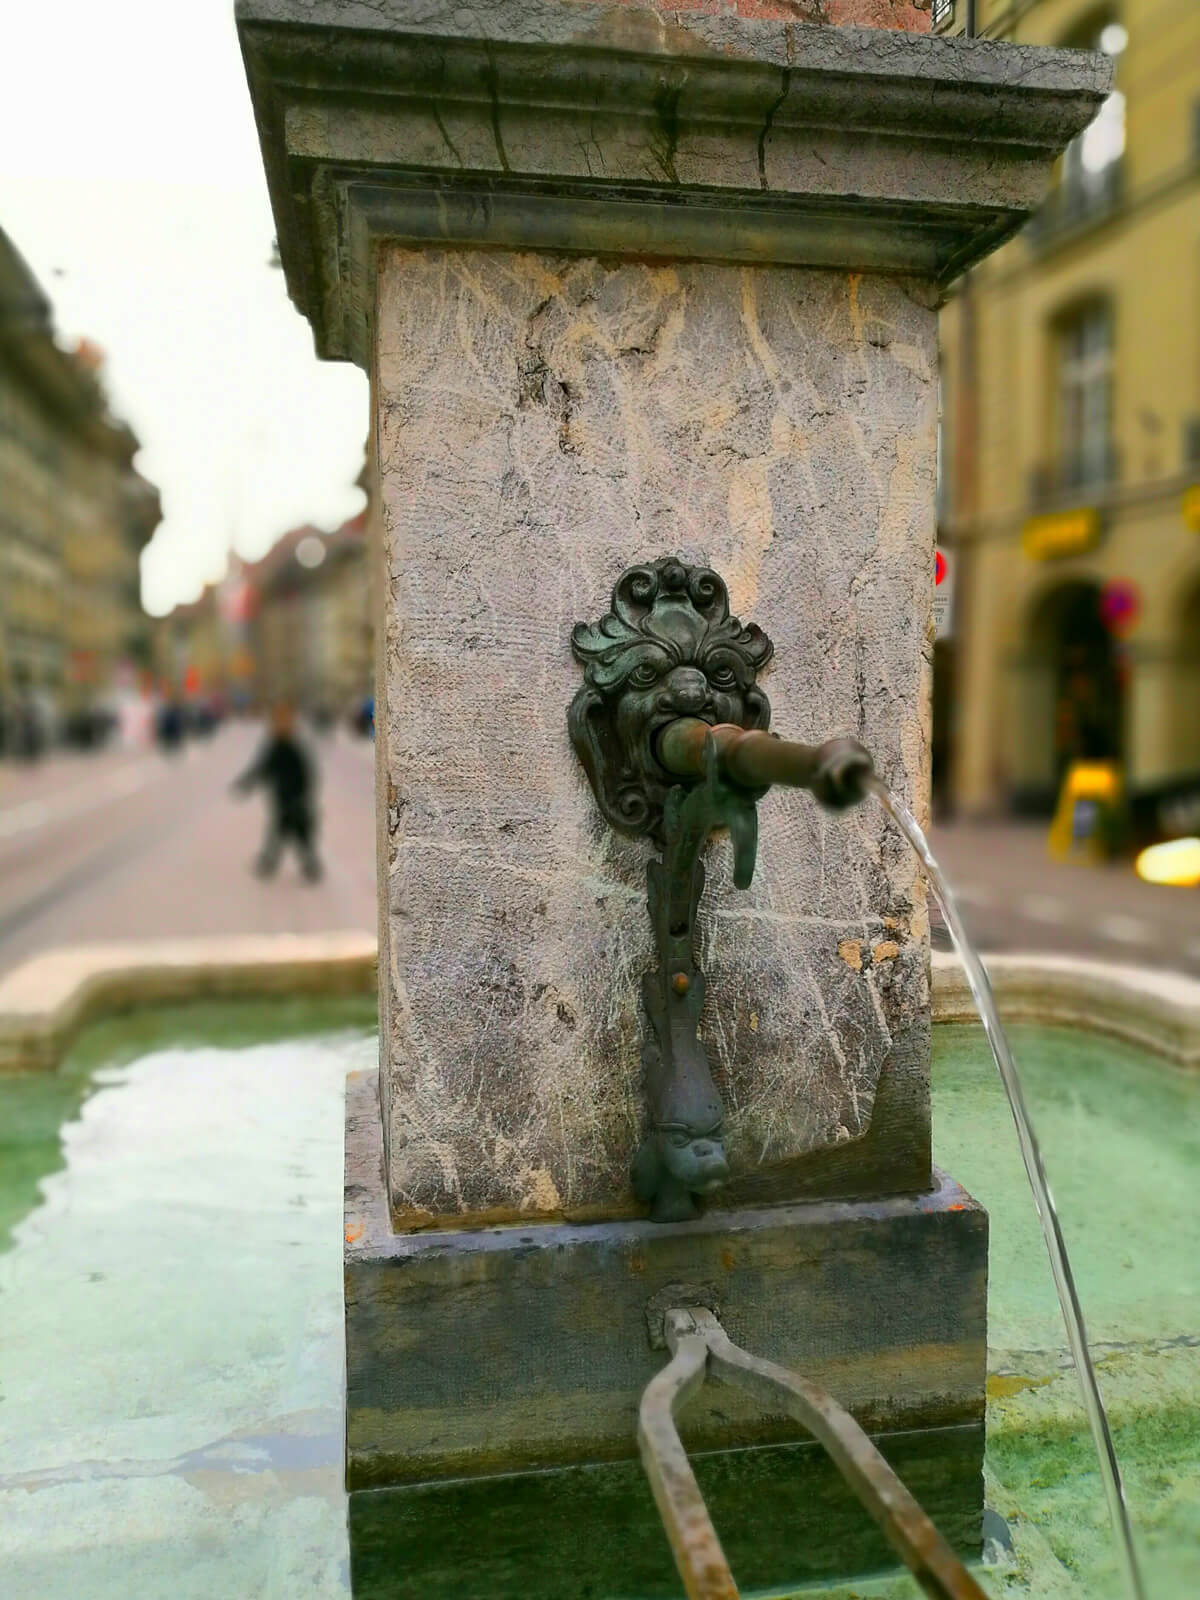 Fountain in Bern, Switzerland